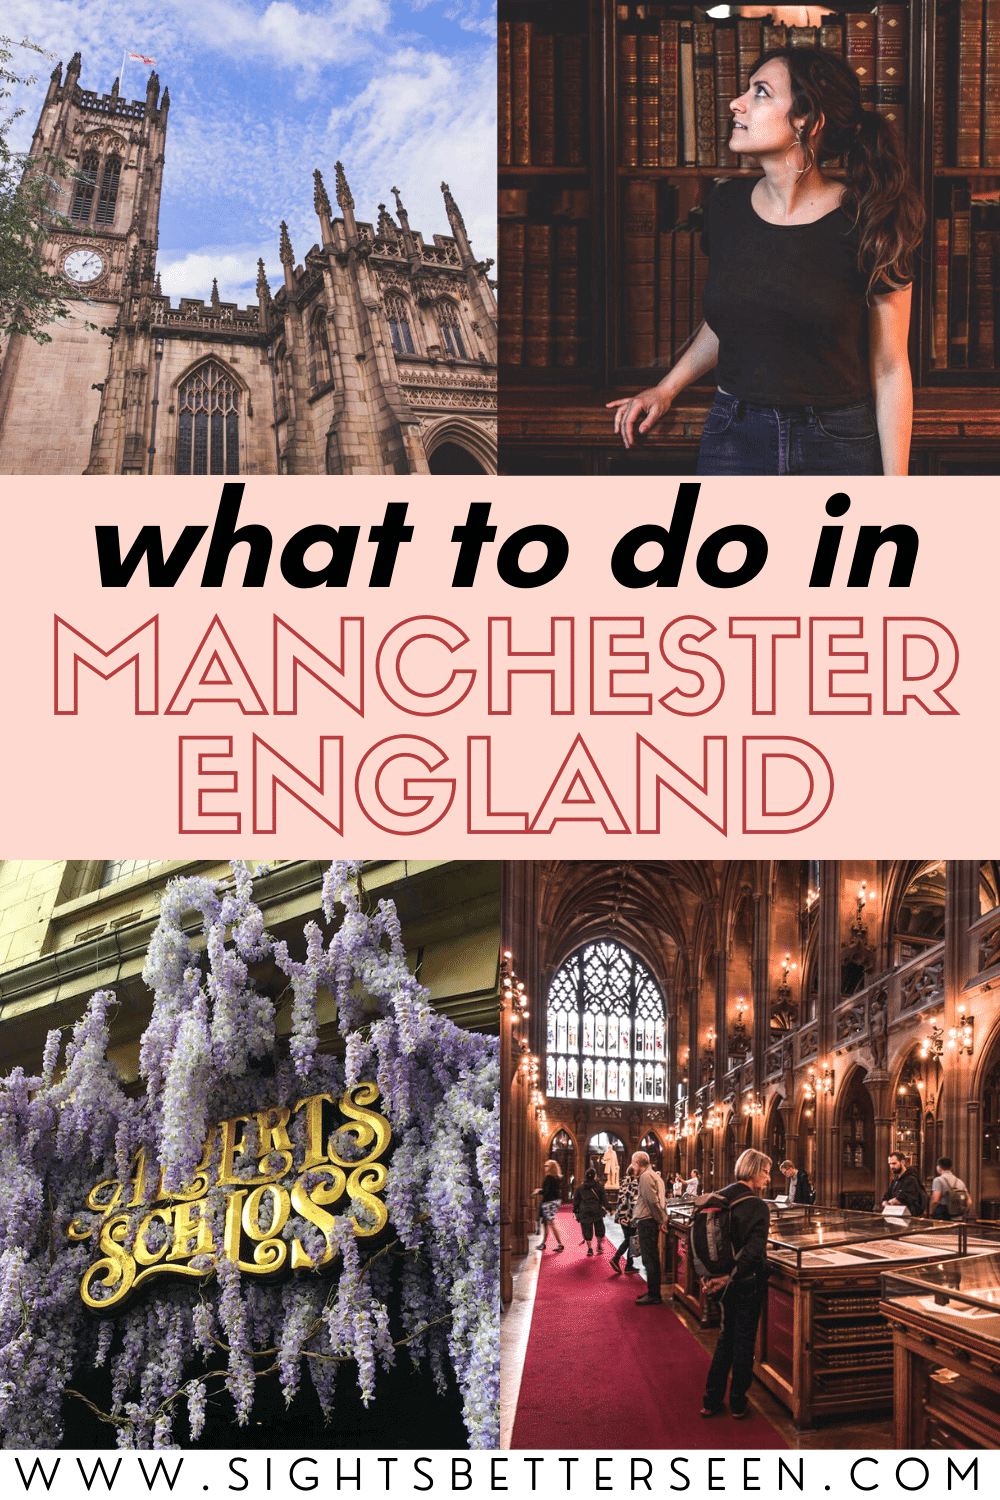 "Text in the middle says ""What to do in Manchester, England"". Upper left photo is of Manchester Cathedral; upper right is of Kelsey wearing a black shirt, blue jeans, with her arm leaning on the bookshelf behind her looking to the side with her brown hair in a ponytail and gold hoop earrings; lower left is of the ""Albert's Schloss"" sign in fancy gold lettering with light purple flowers hanging around it; lower right is of the John Rylands Library interior, with people walking around under the lit up hallways."